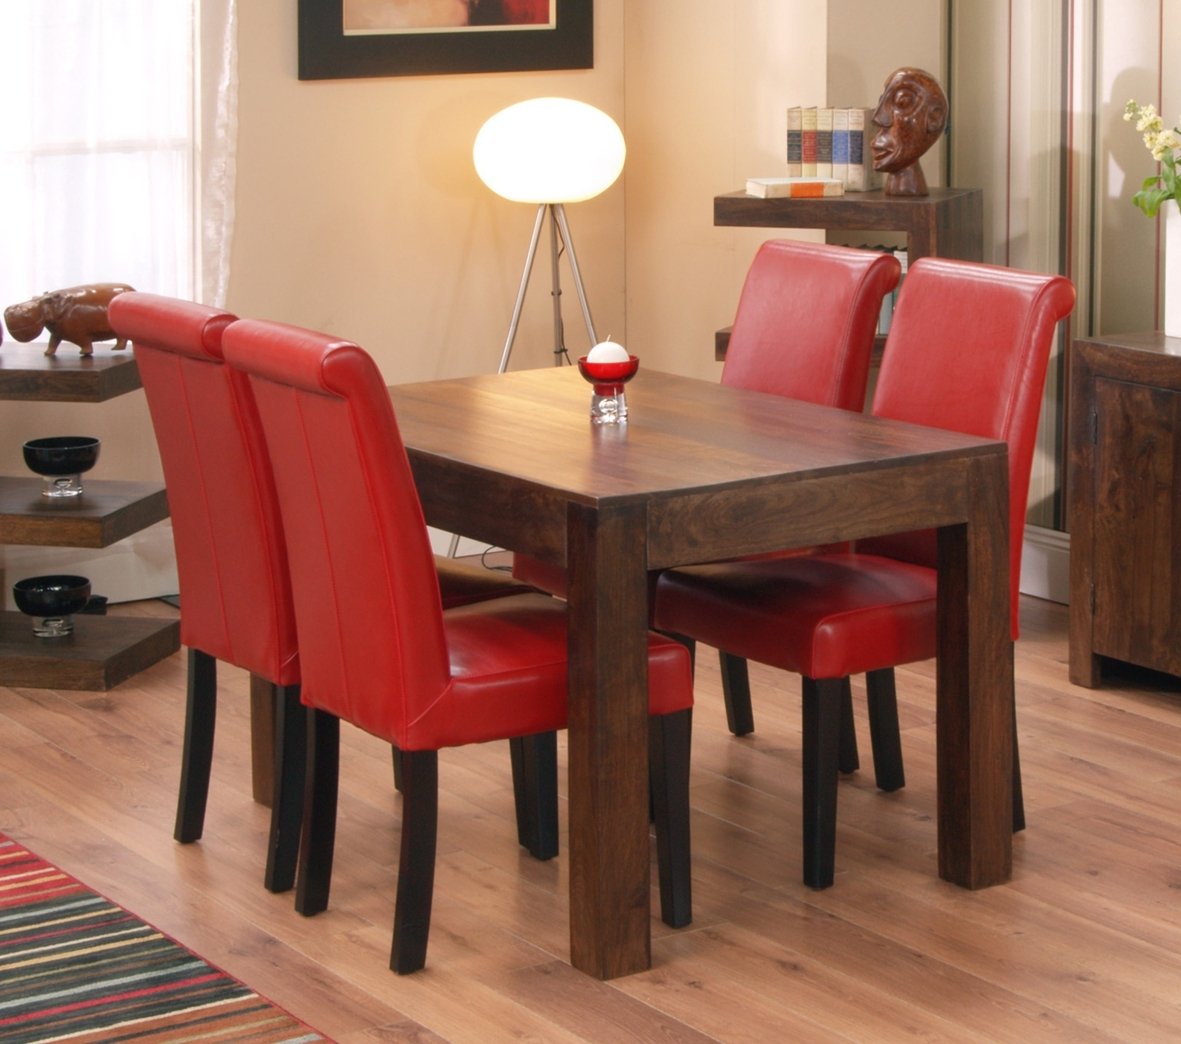 Most Recently Released Dining Tables: Glamorous Small Dining Table Sets Small Dining Sets Inside Compact Dining Tables And Chairs (View 18 of 25)